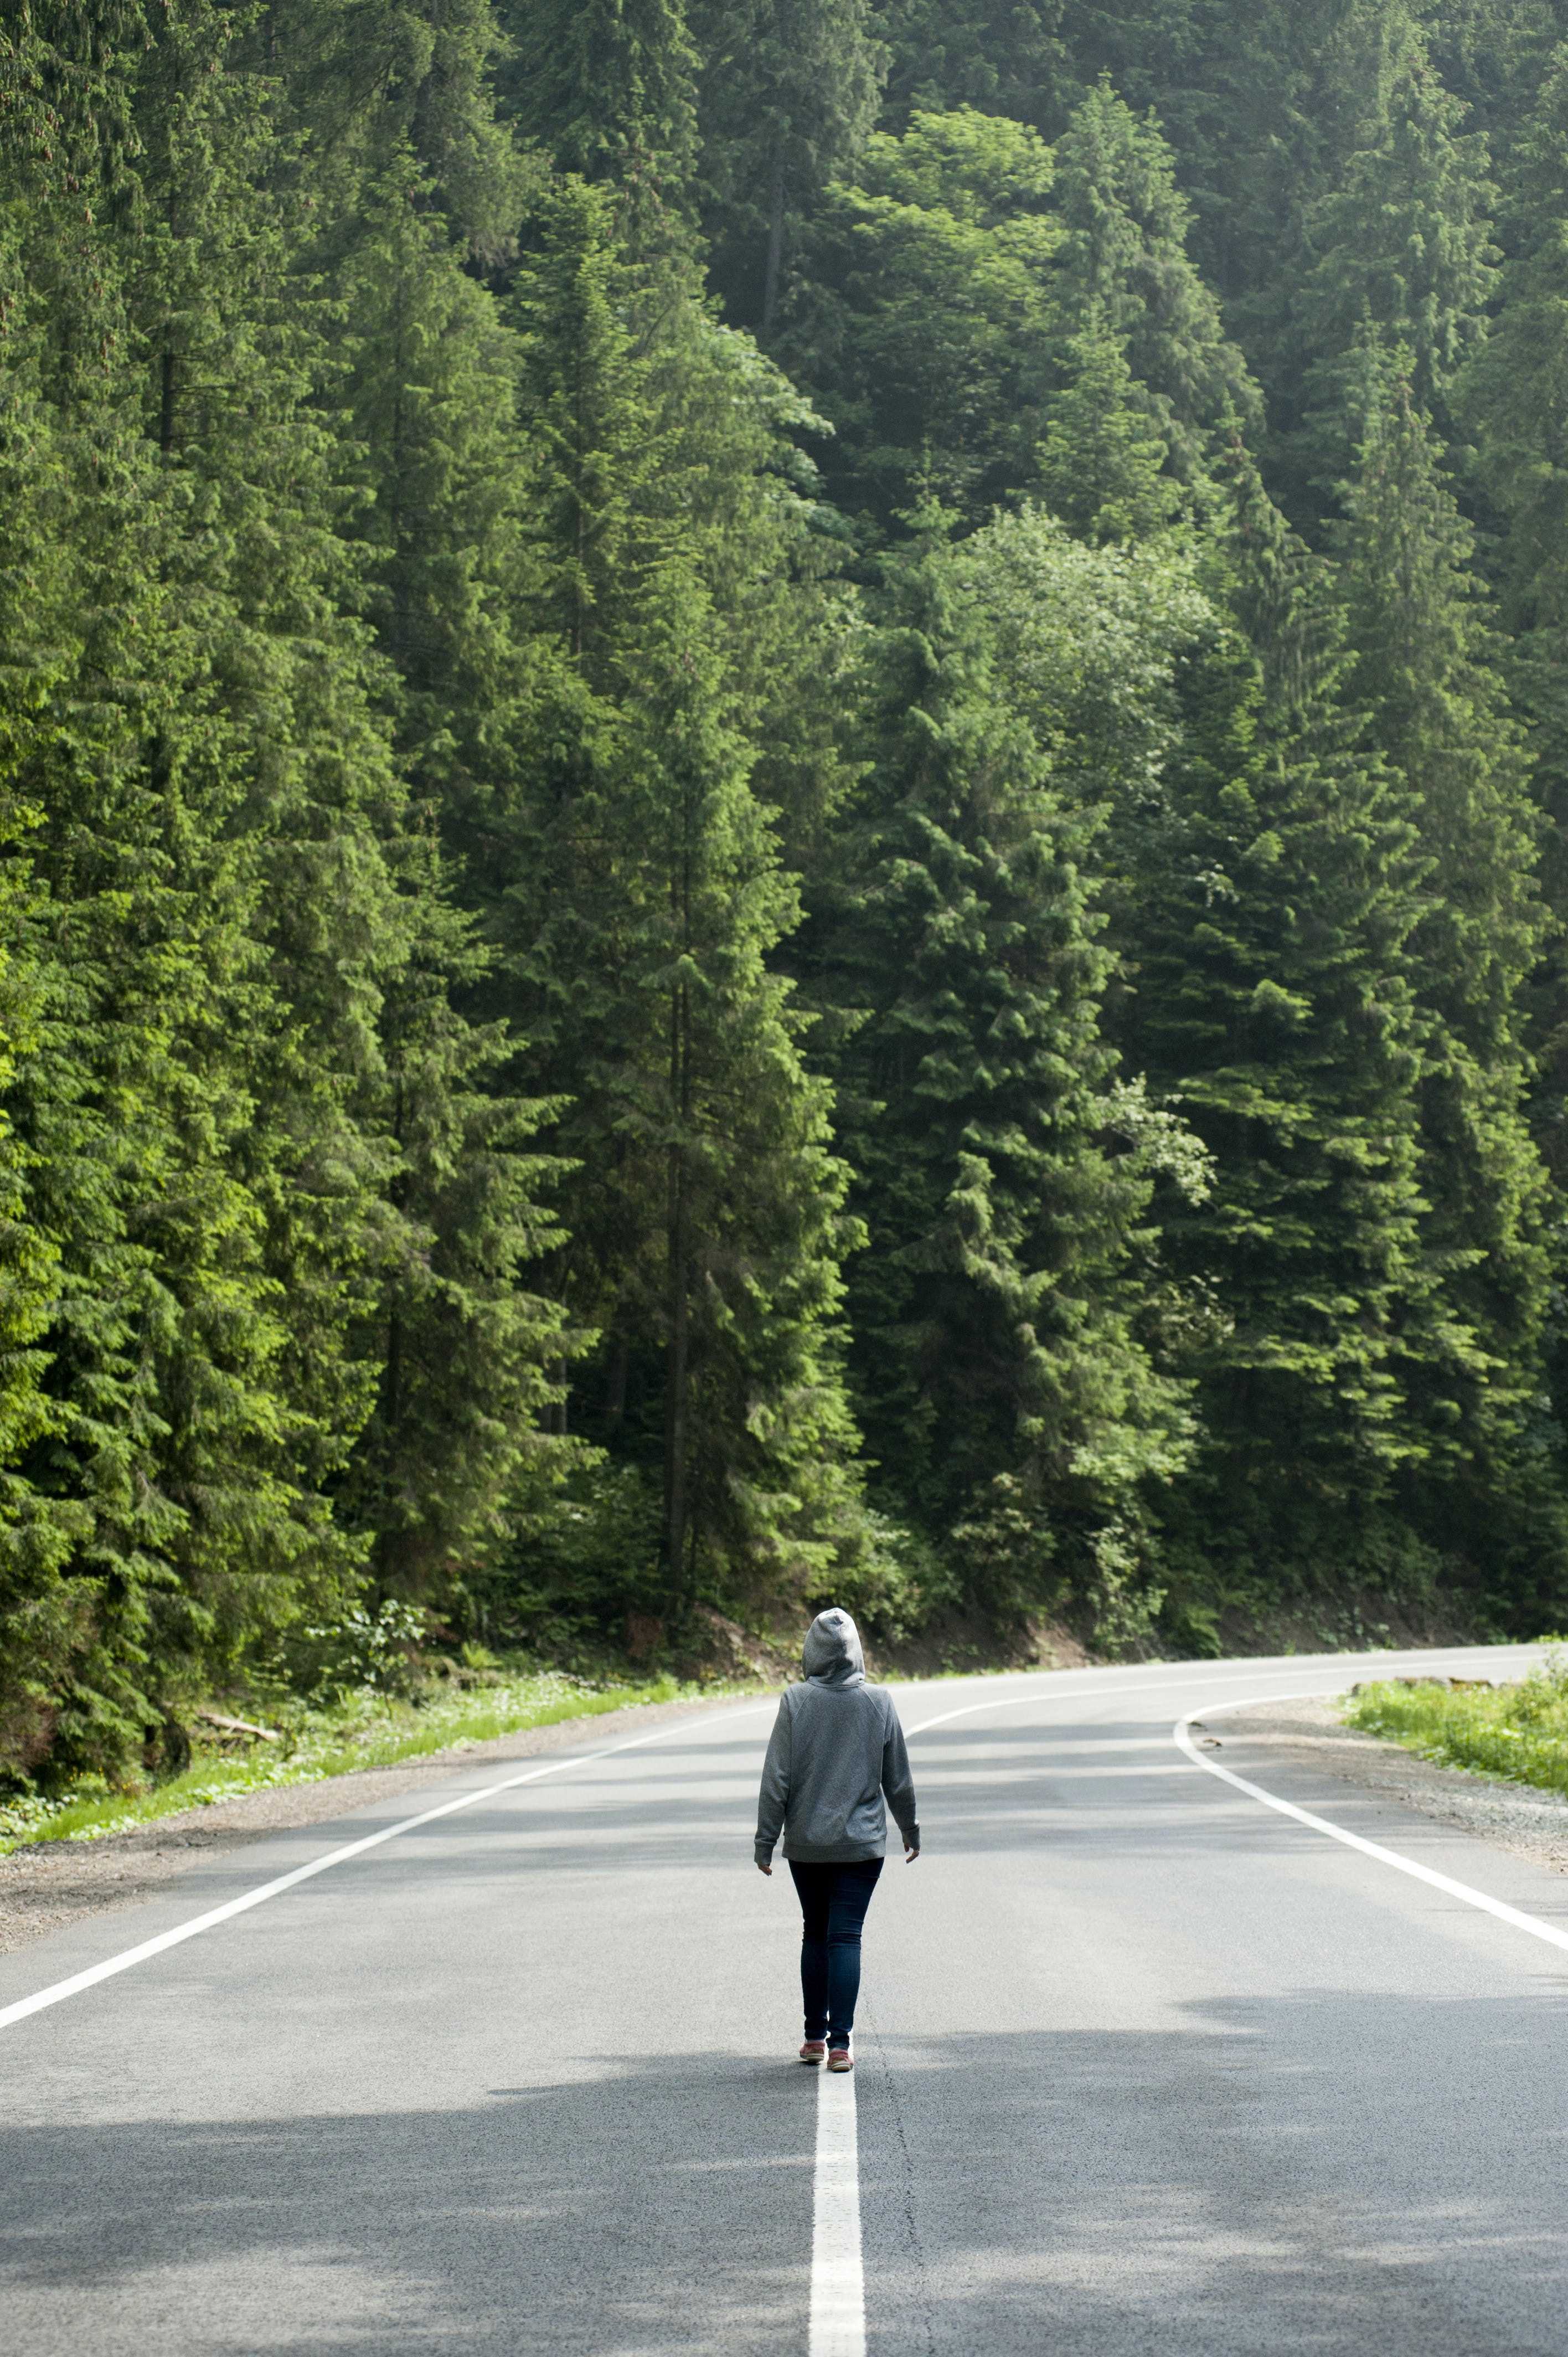 Person Walking on Road Near Trees